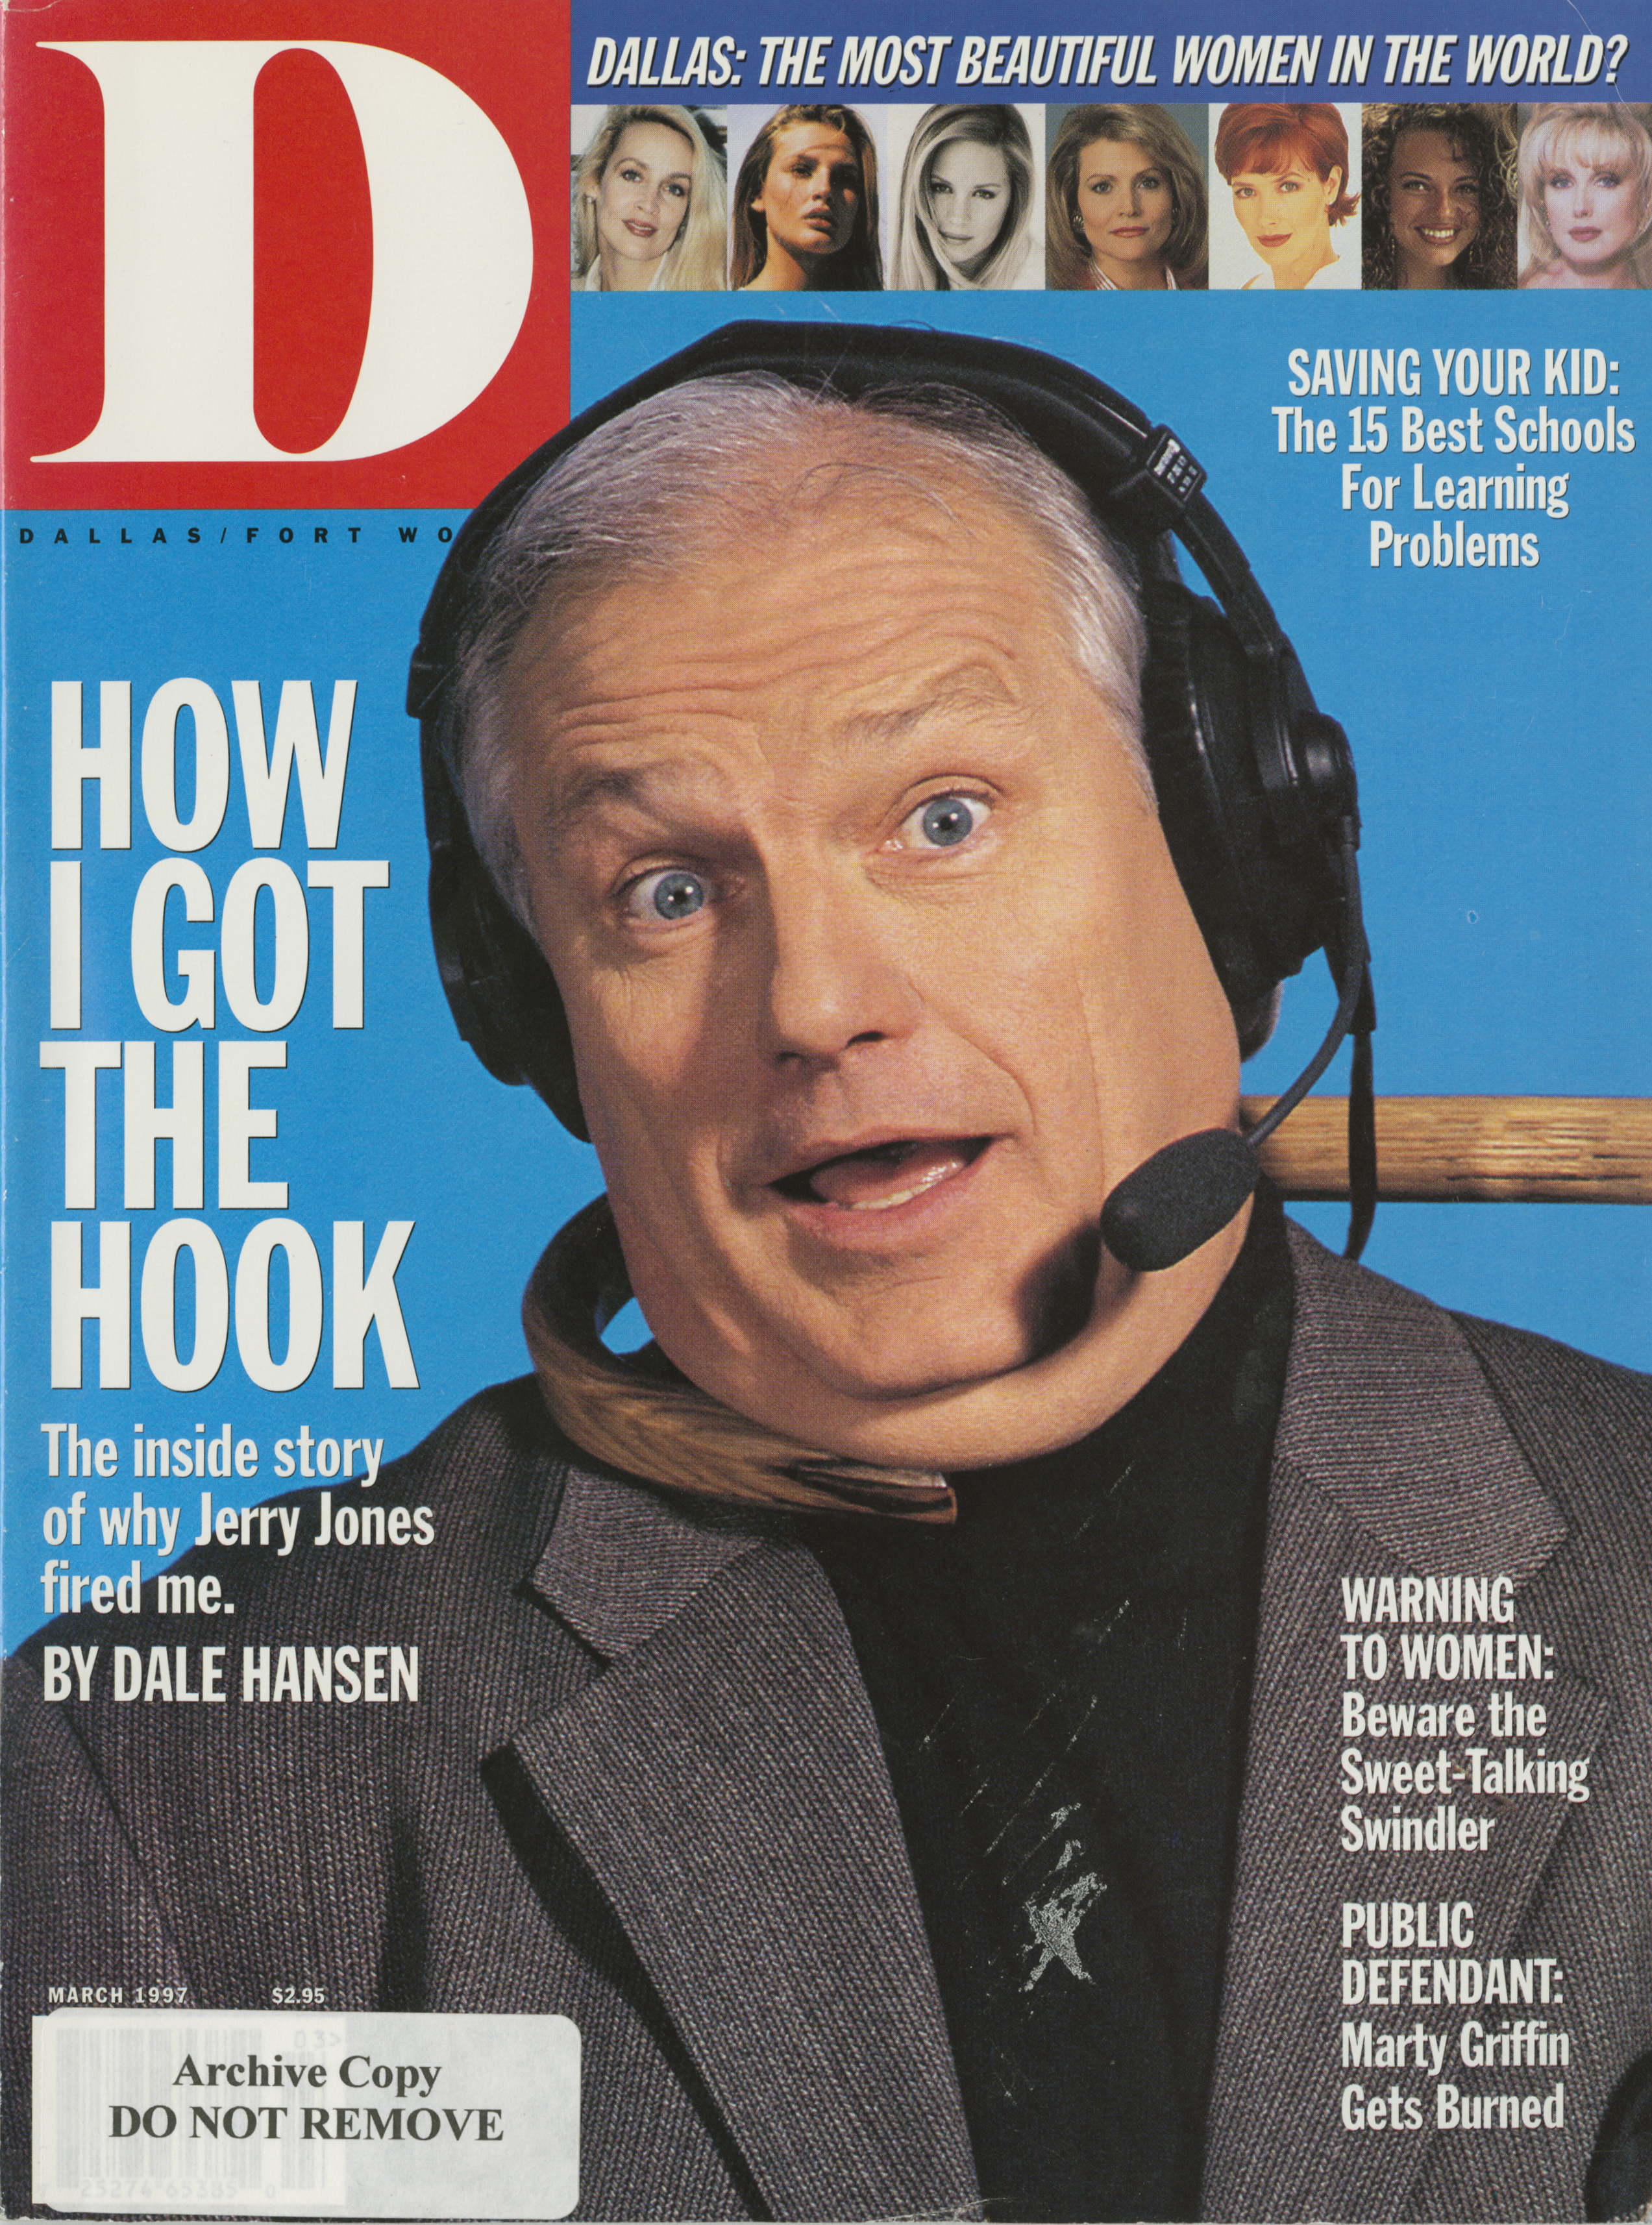 March 1997 cover